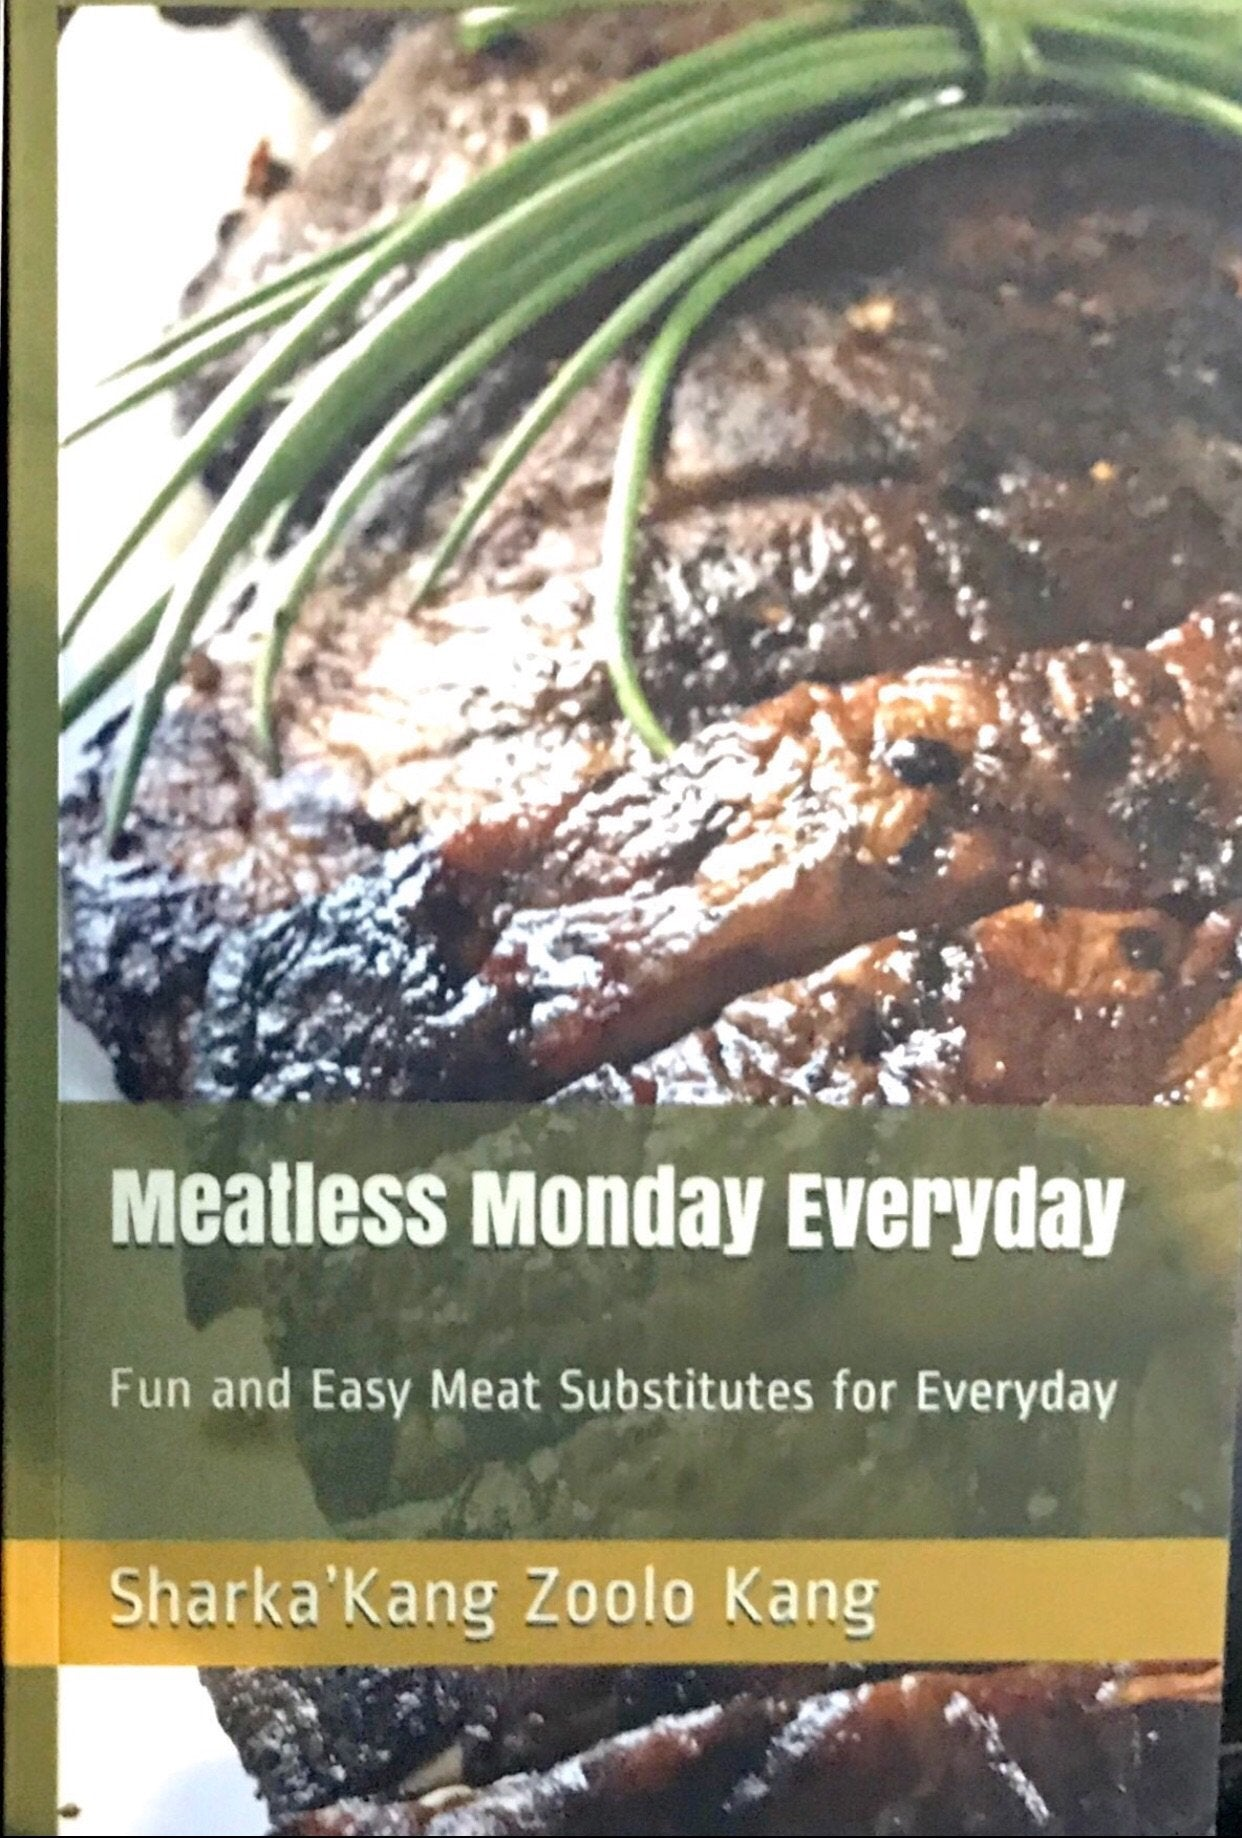 Meatless Monday Everyday by Dr.Kang